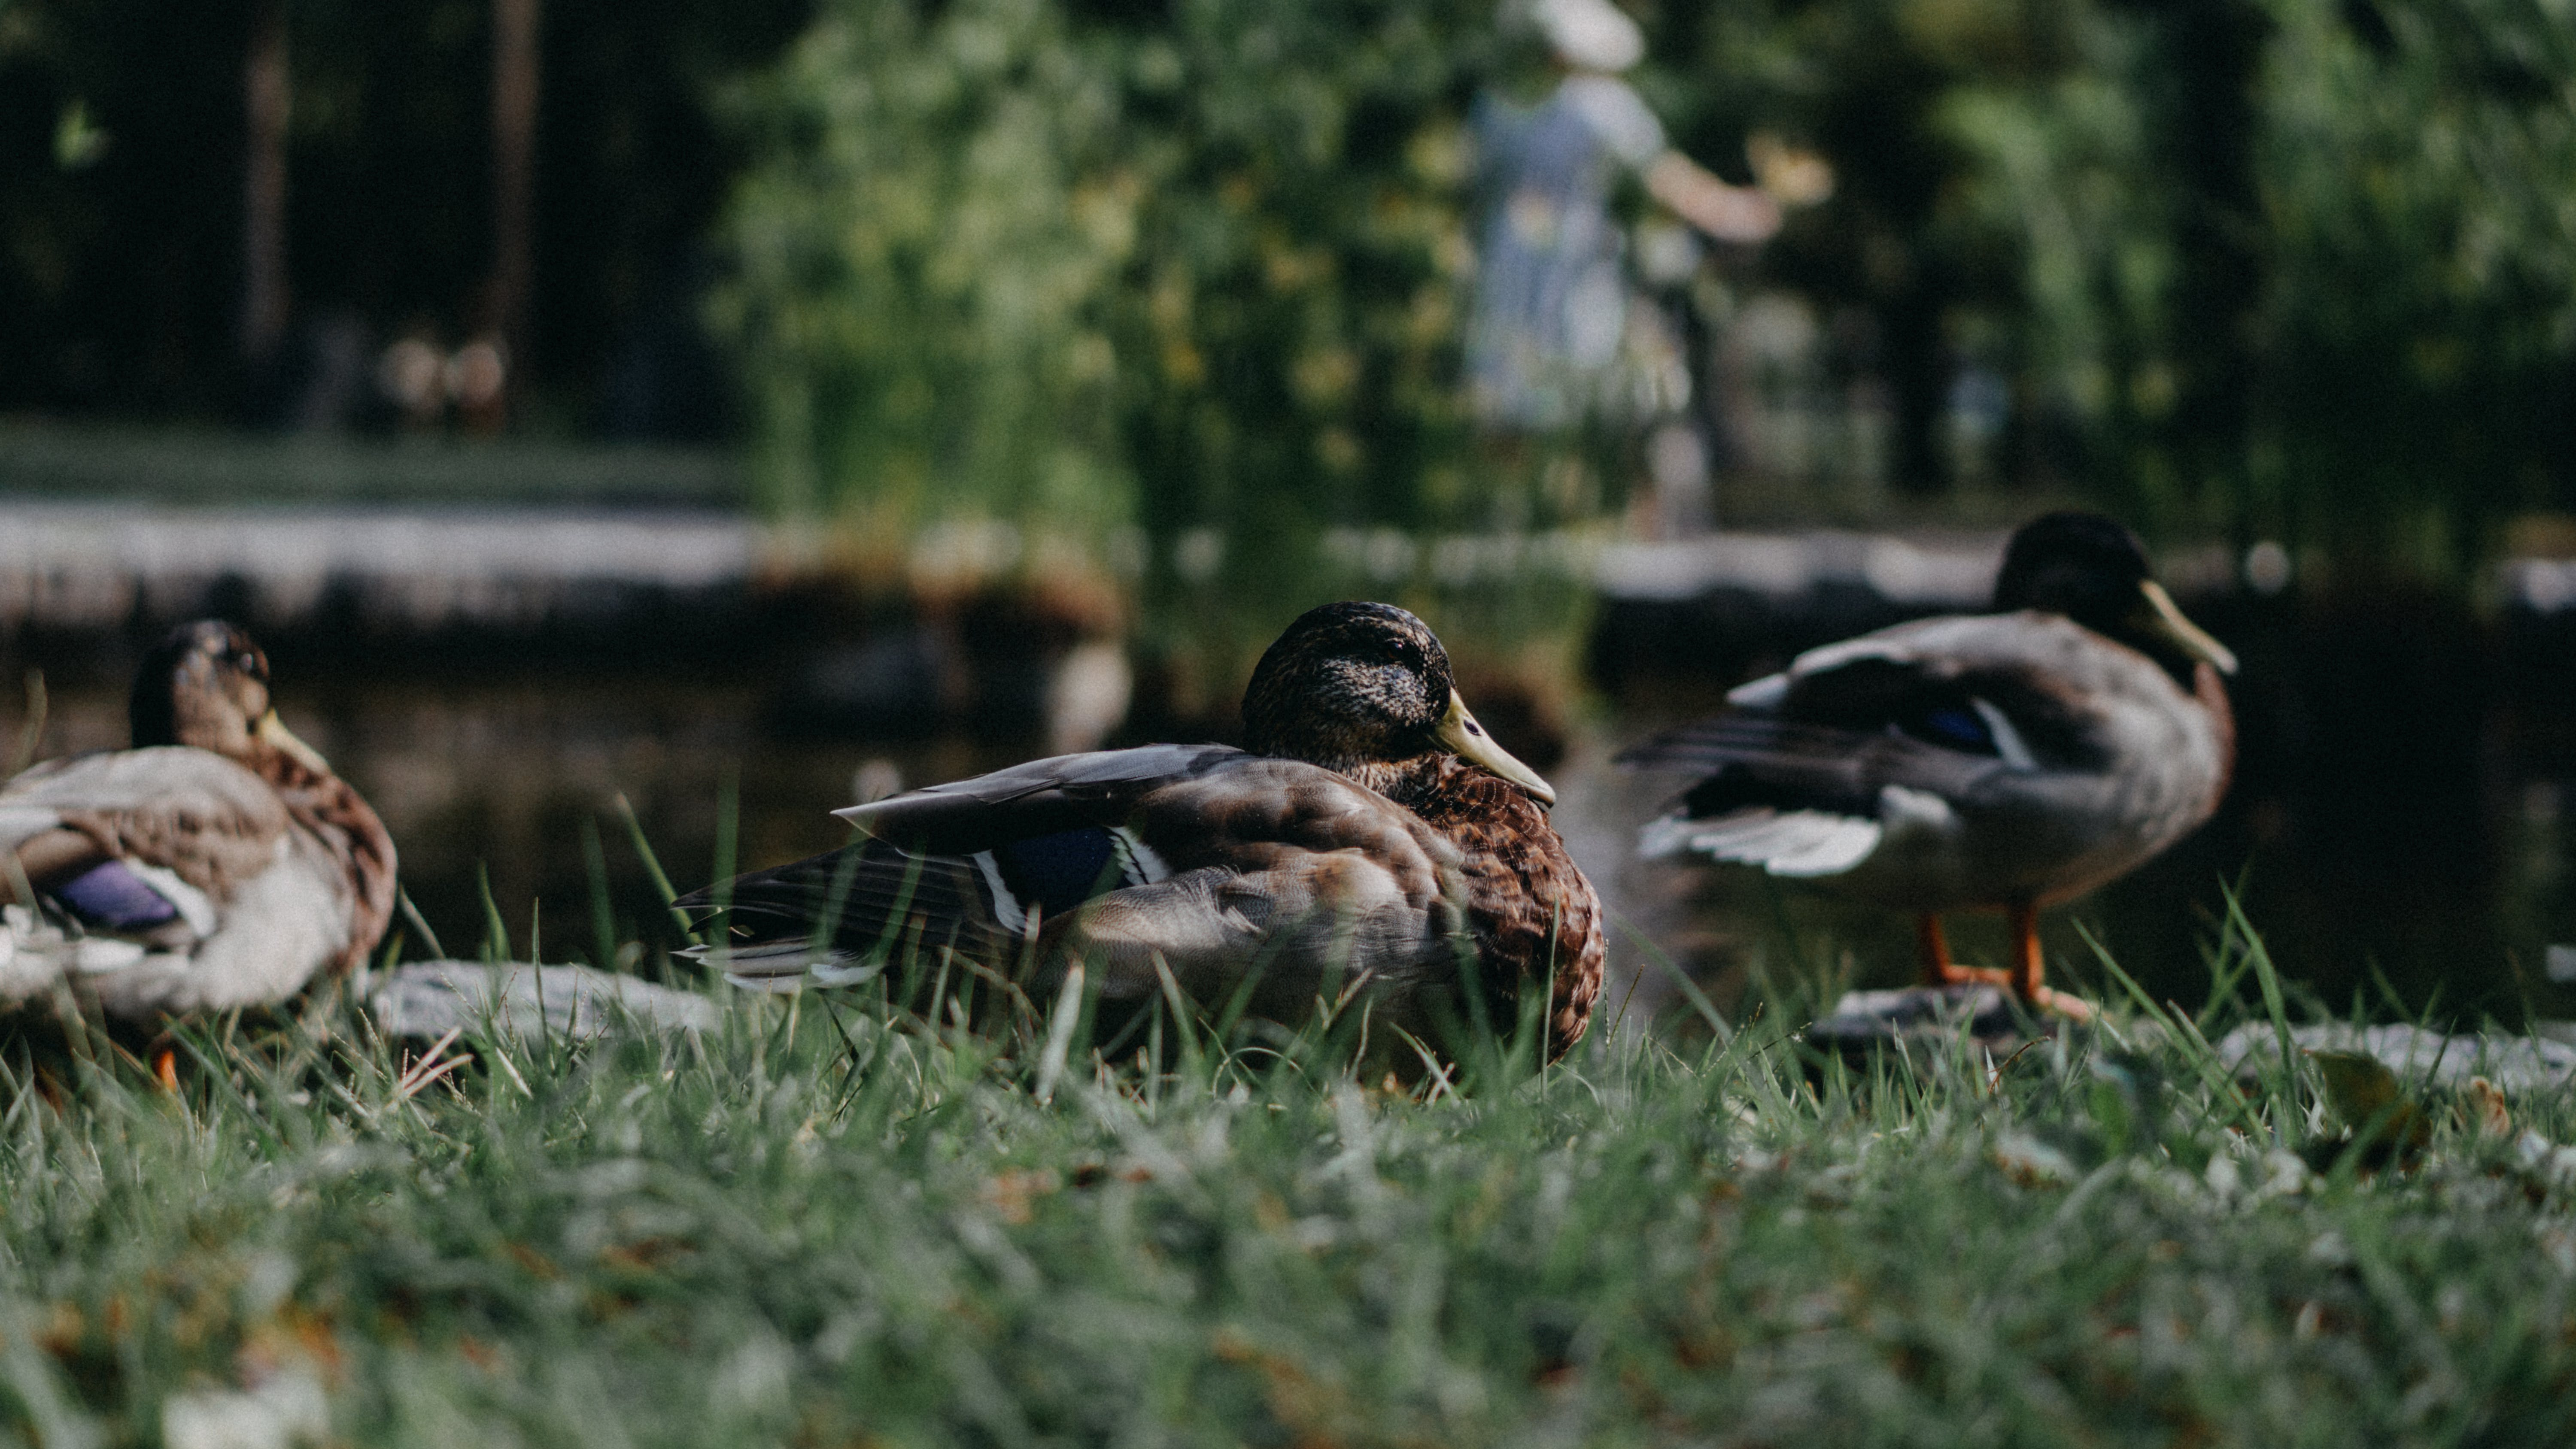 Close-Up Photo Of Ducks On Grass